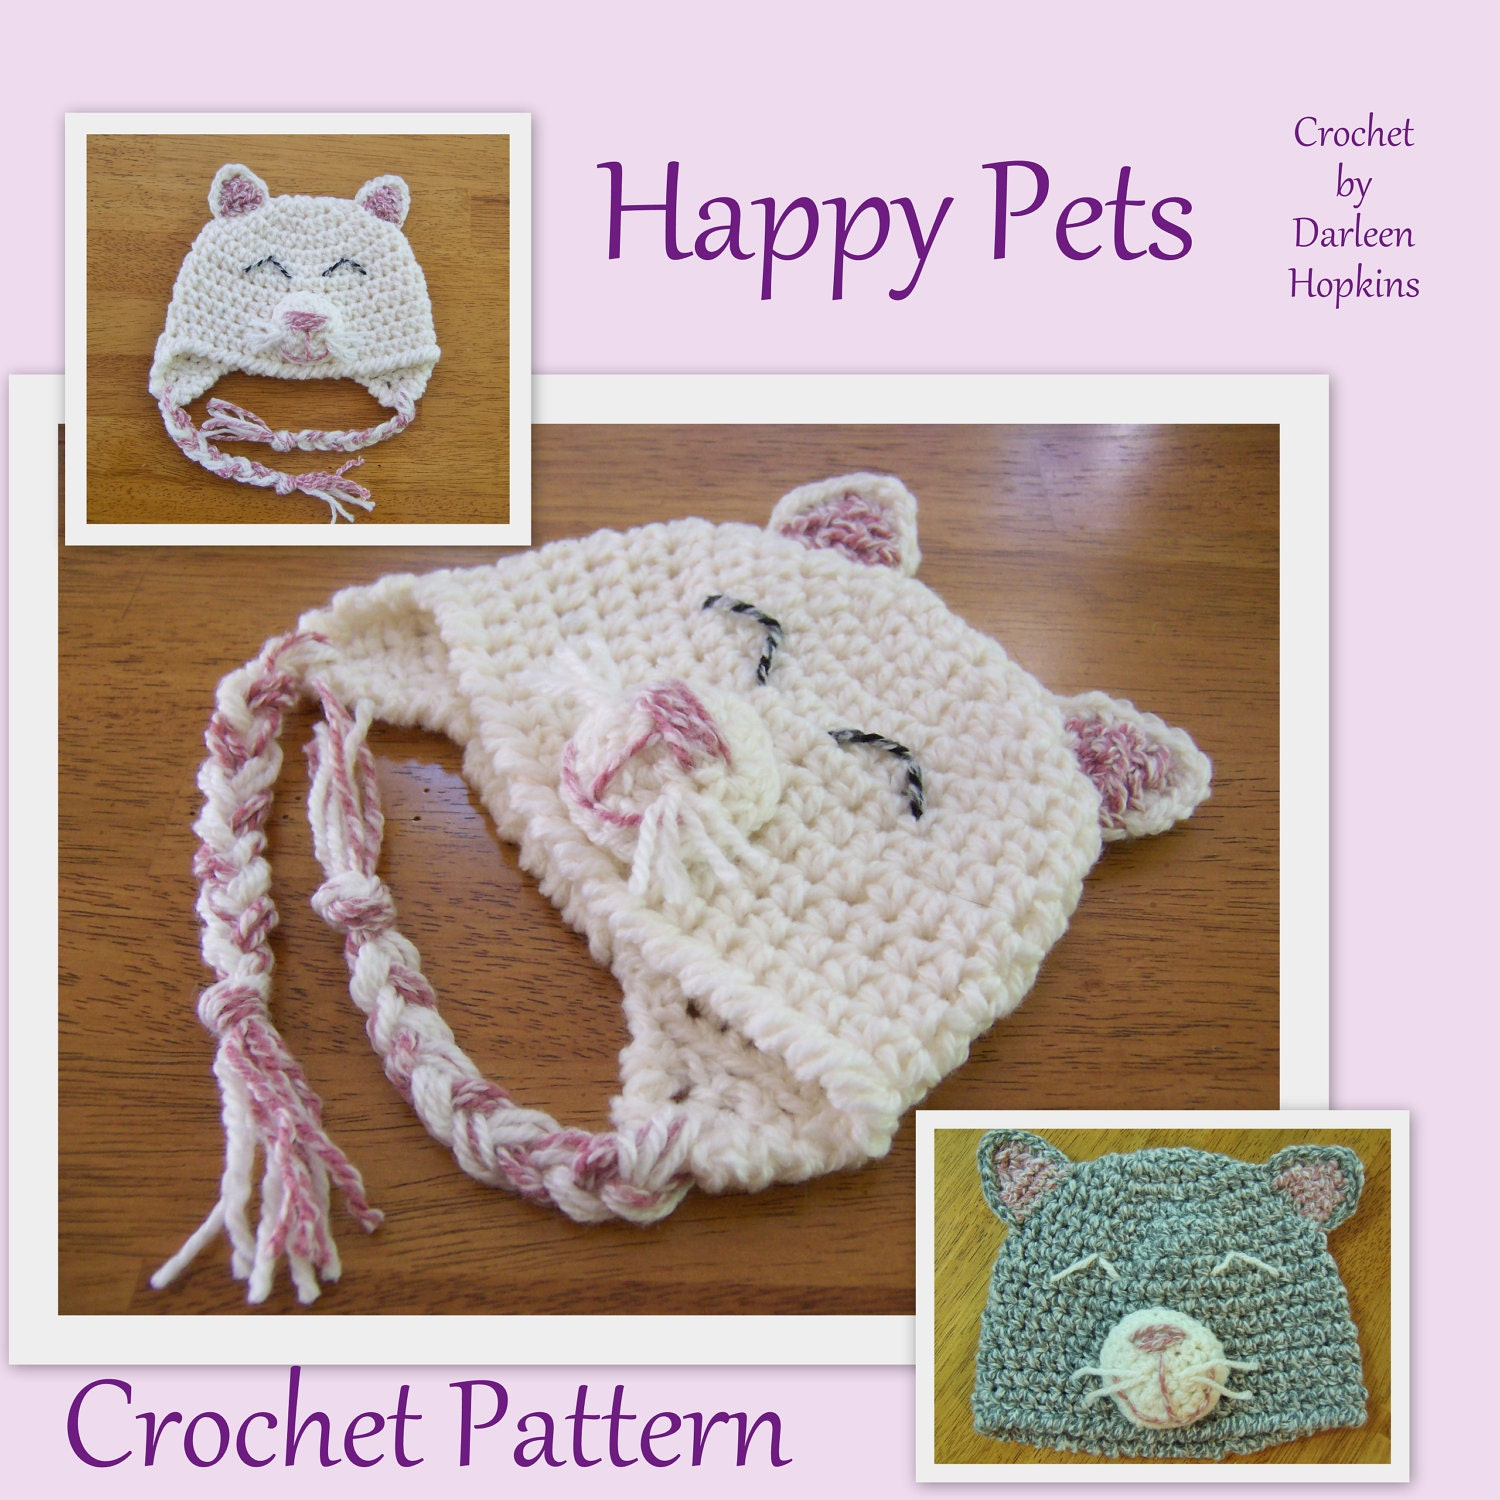 Crochet Kitty Hat Pattern : Crochet Pattern Cat Hat with earflaps Happy by CrochetByDarleen